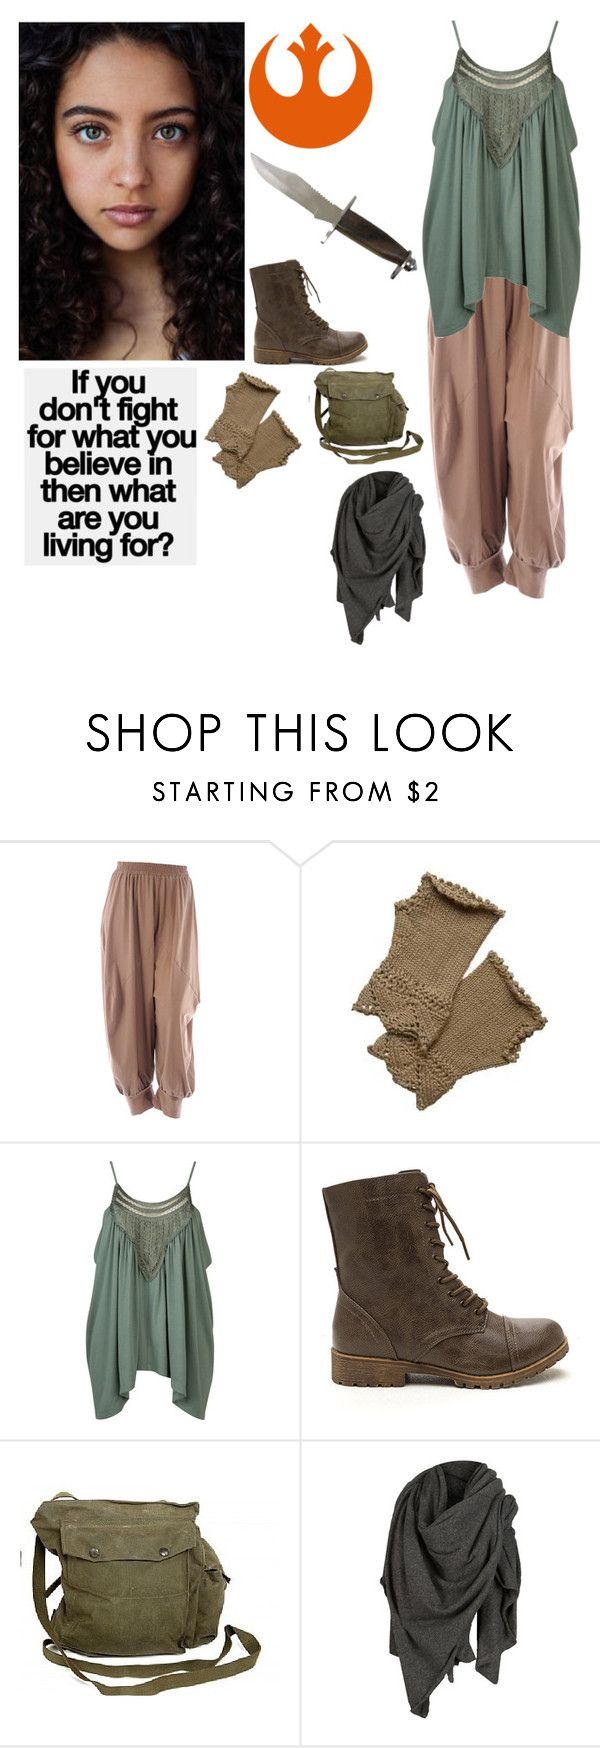 """""""Mecka-Star Wars Oc"""" by raeging-fangirl2003 ❤ liked on Polyvore featuring Isolde Roth, Forever 21, Artista, GAS Jeans, AllSaints, OC, starwars and Resistence"""